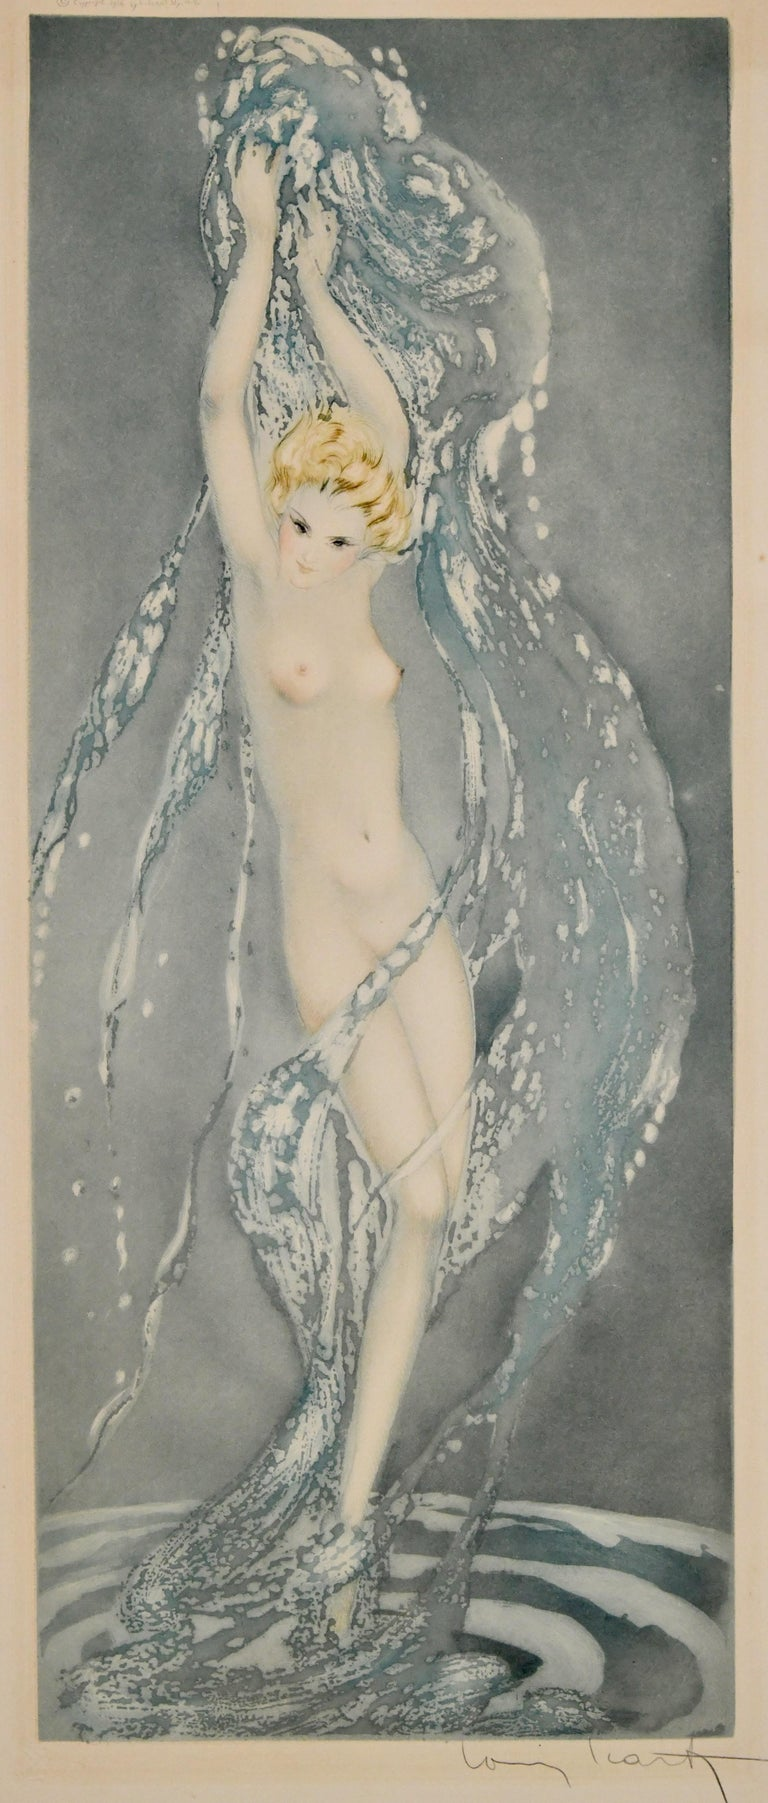 Pair of Art Deco Etchings Nudes in the Waves Louis Icart, France, 1936 For Sale 1